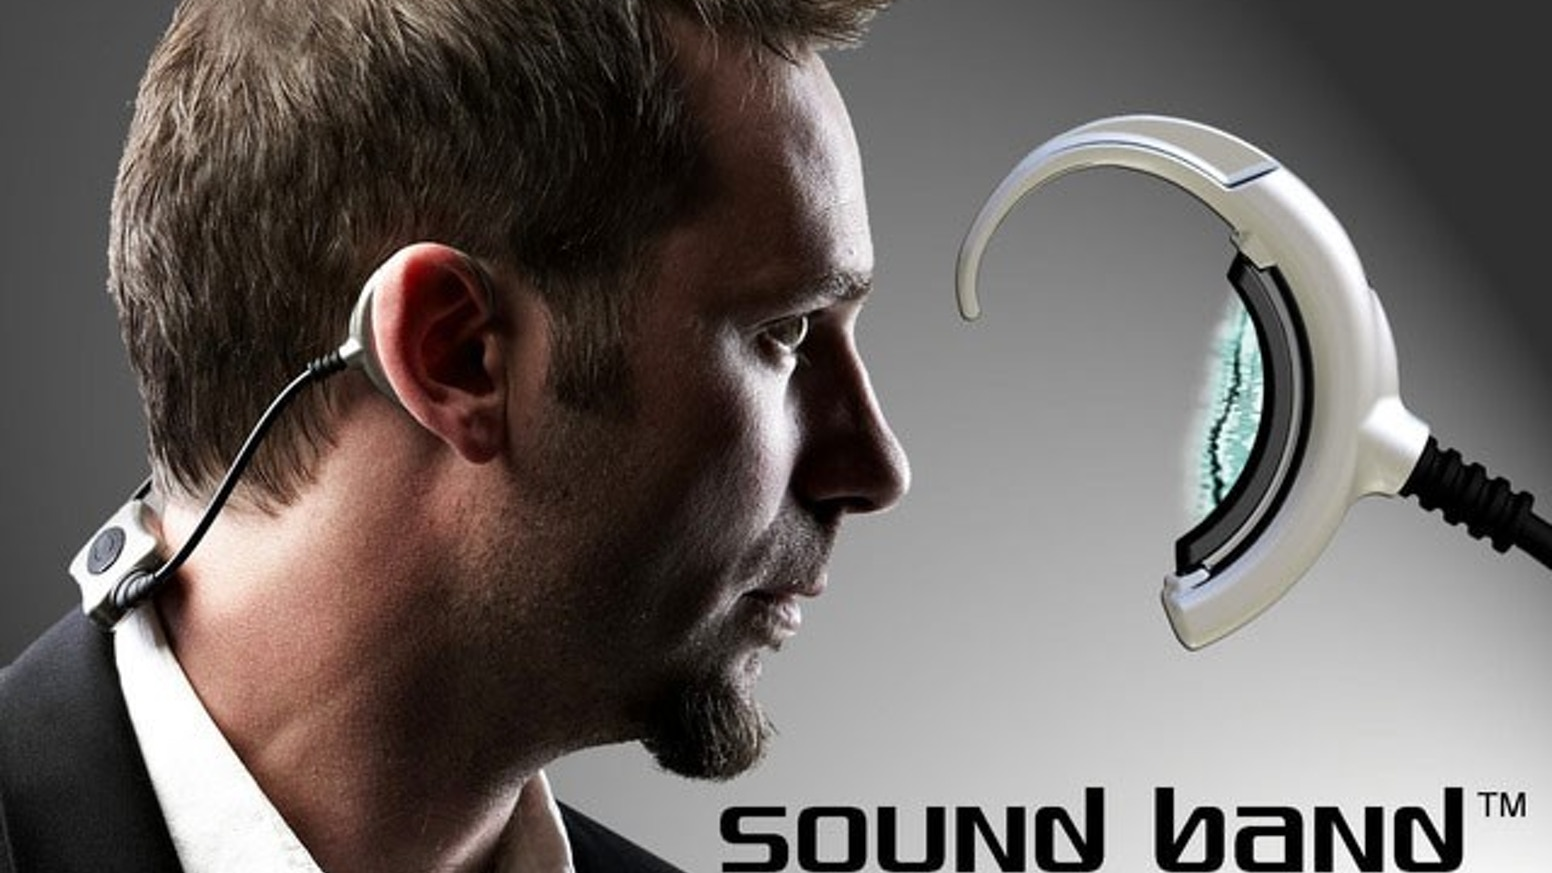 Sound band finally a headset without speakers by hybra advance discover how sound band can open your ears ccuart Gallery